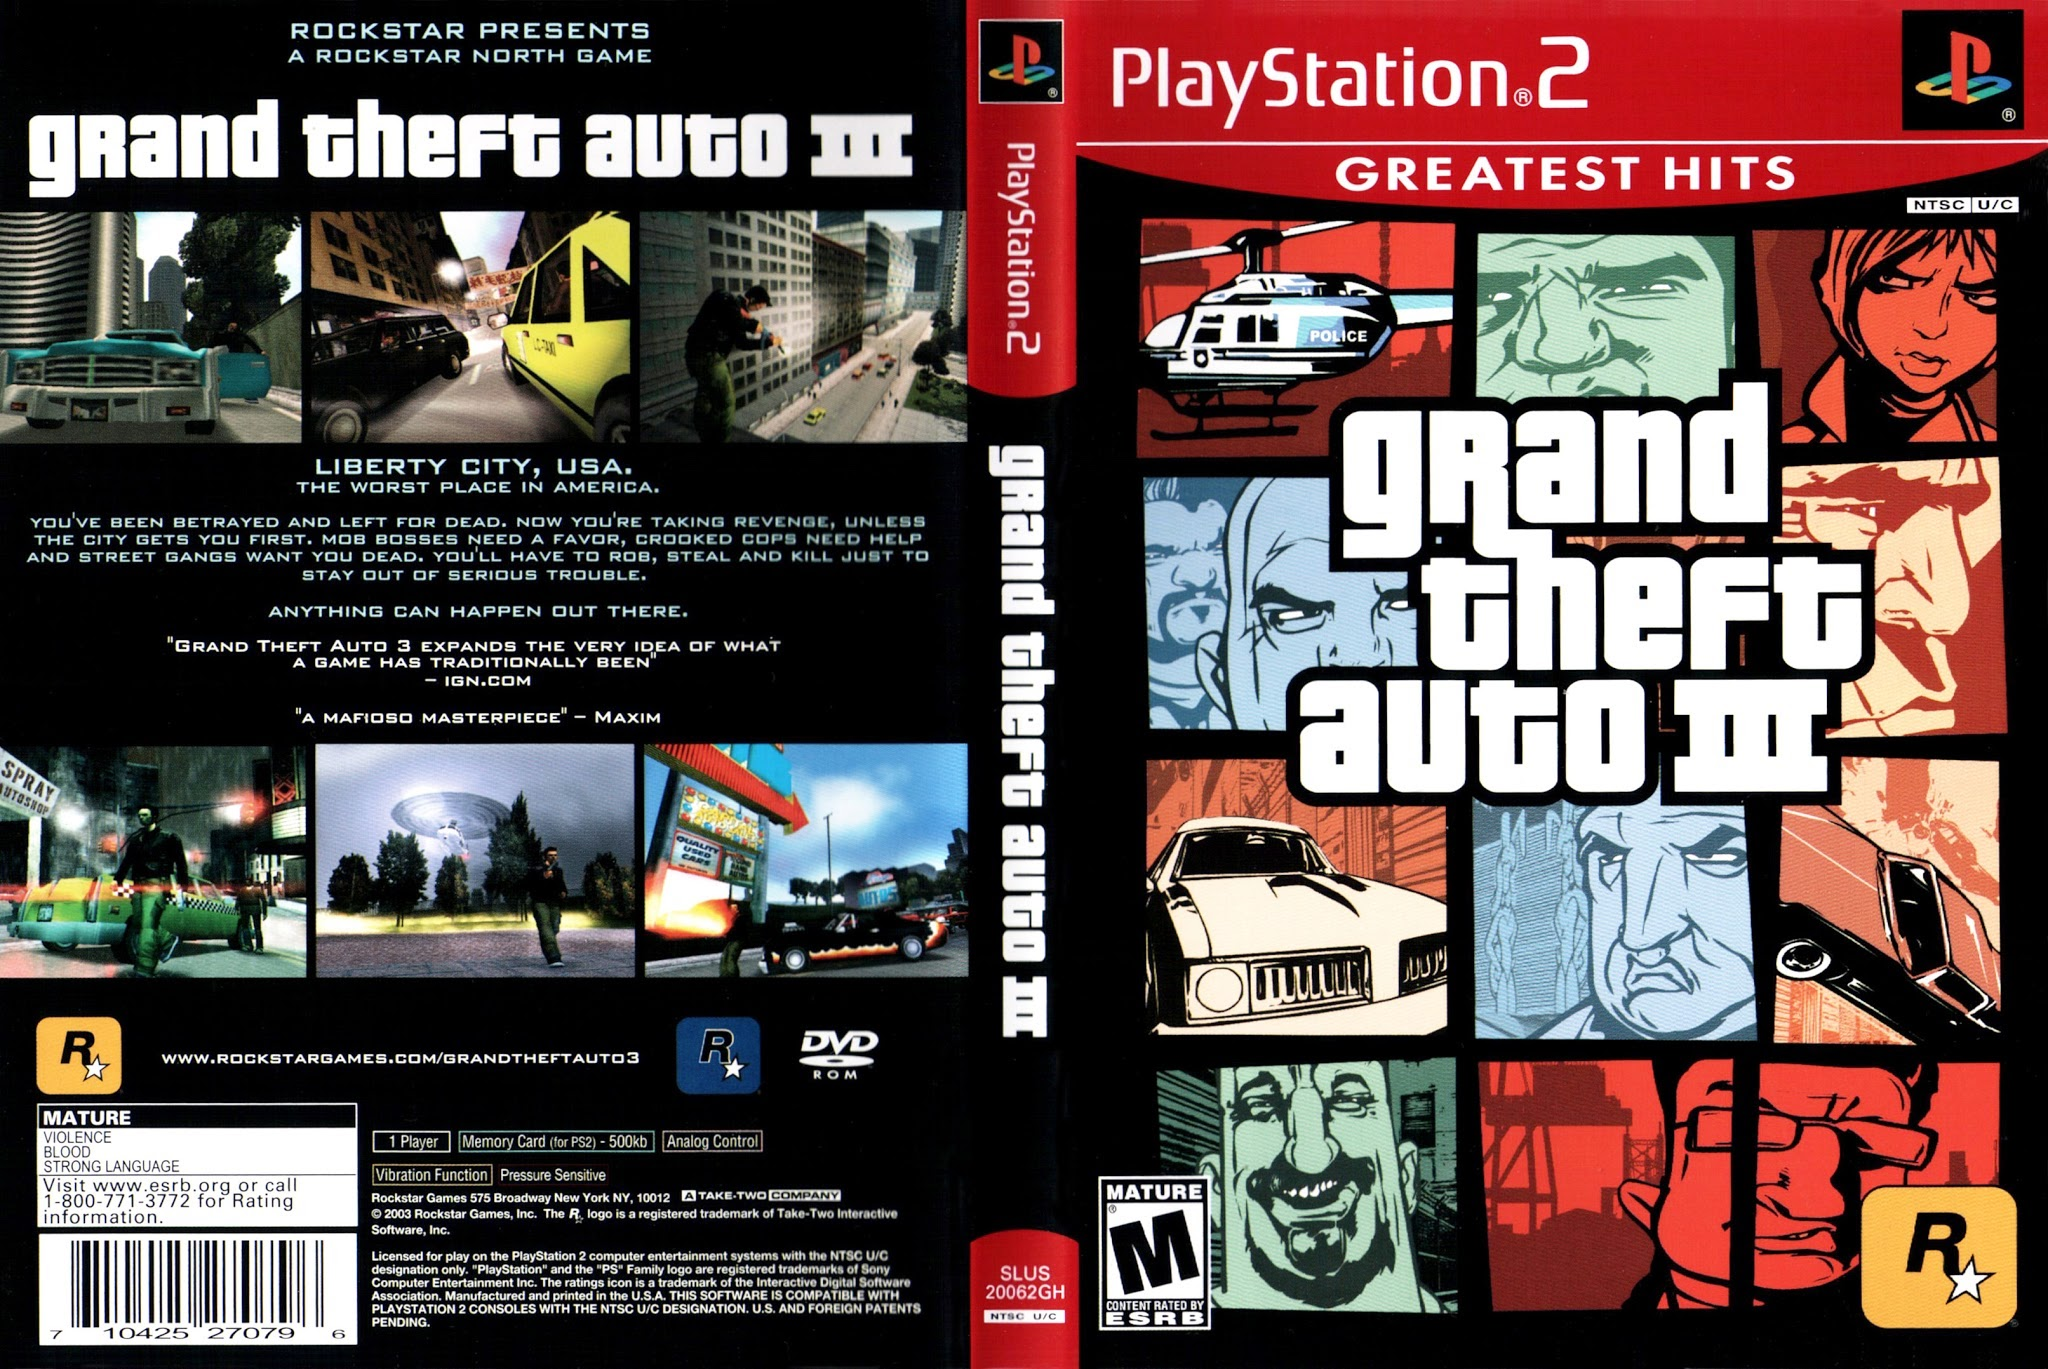 Gta 6 Cover: Gta 6 Cover Front And Back